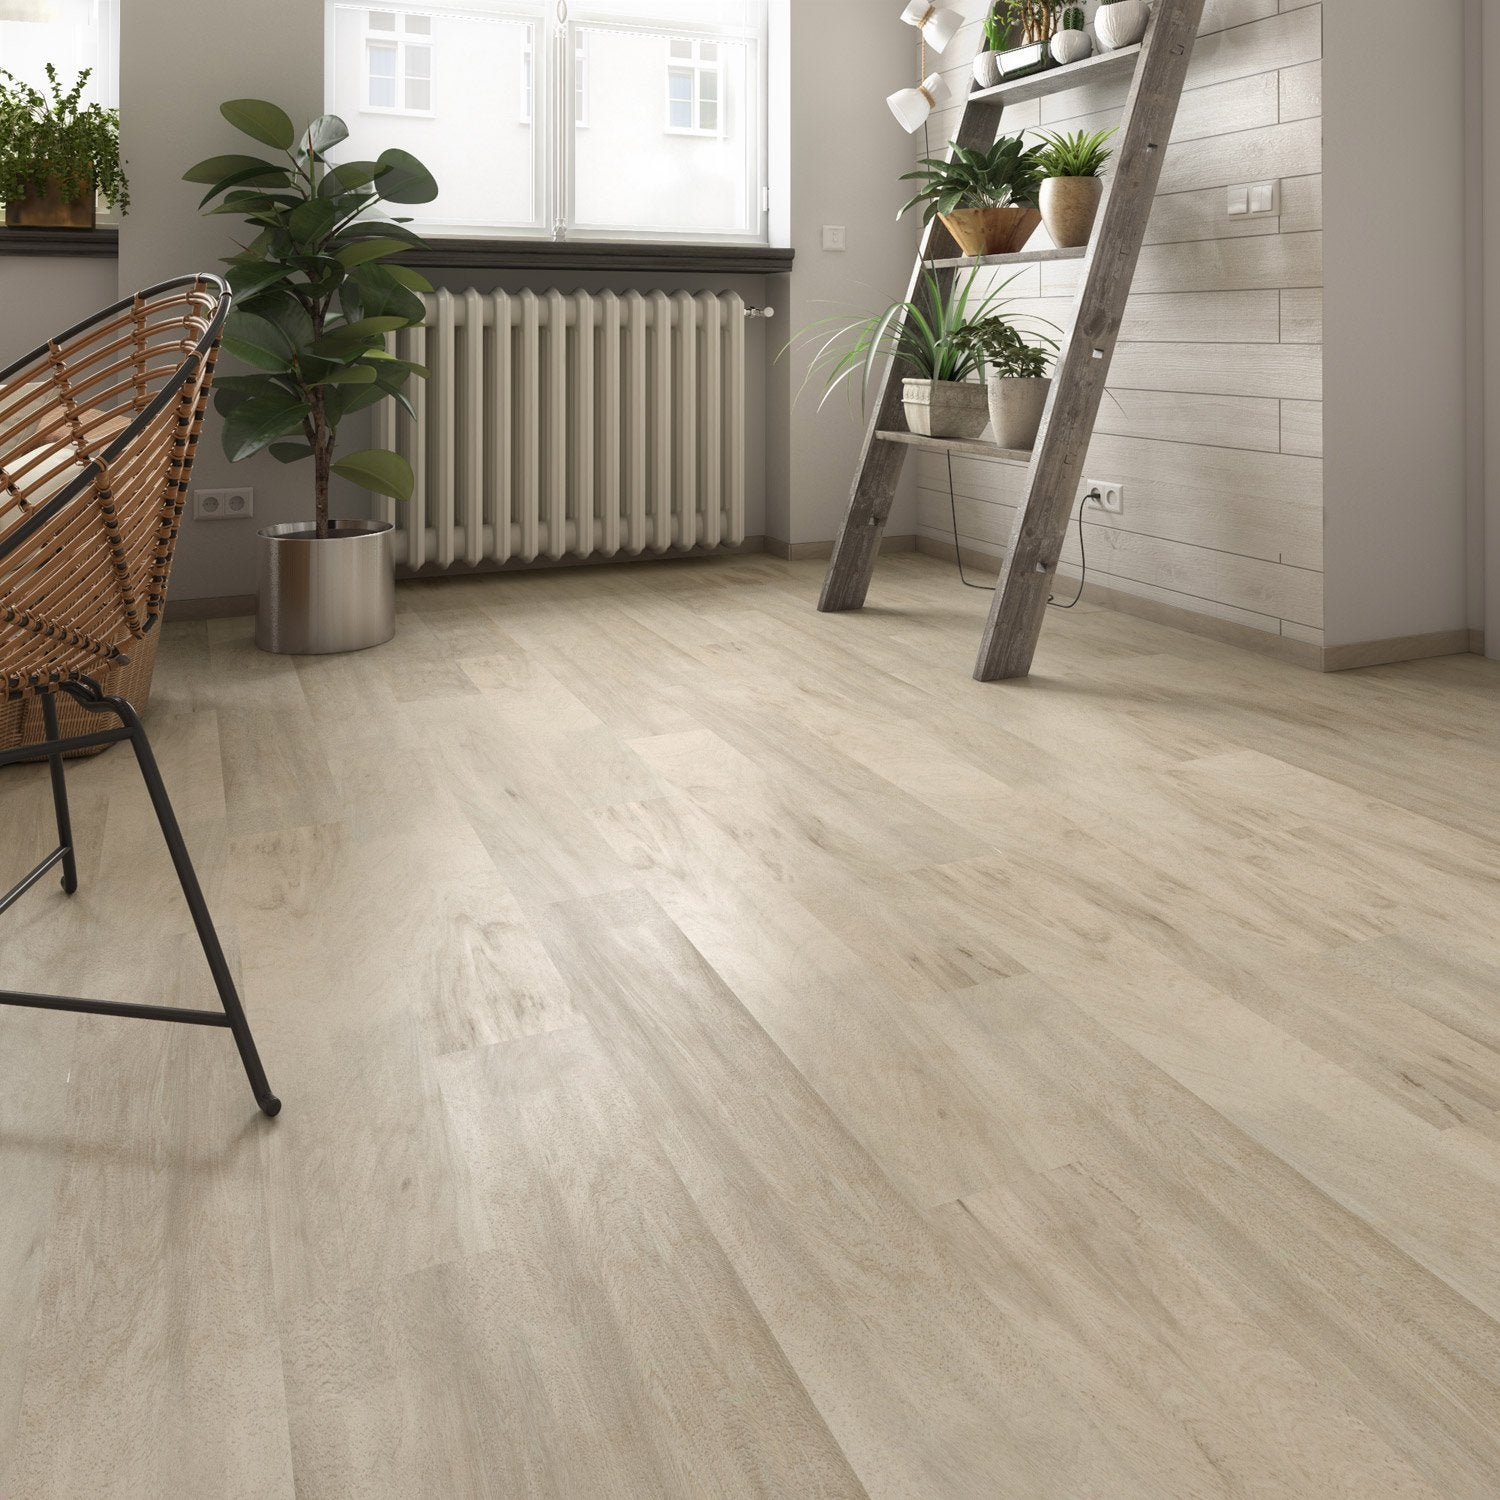 Lame PVC clipsable authentic blond GERFLOR Senso premium clic